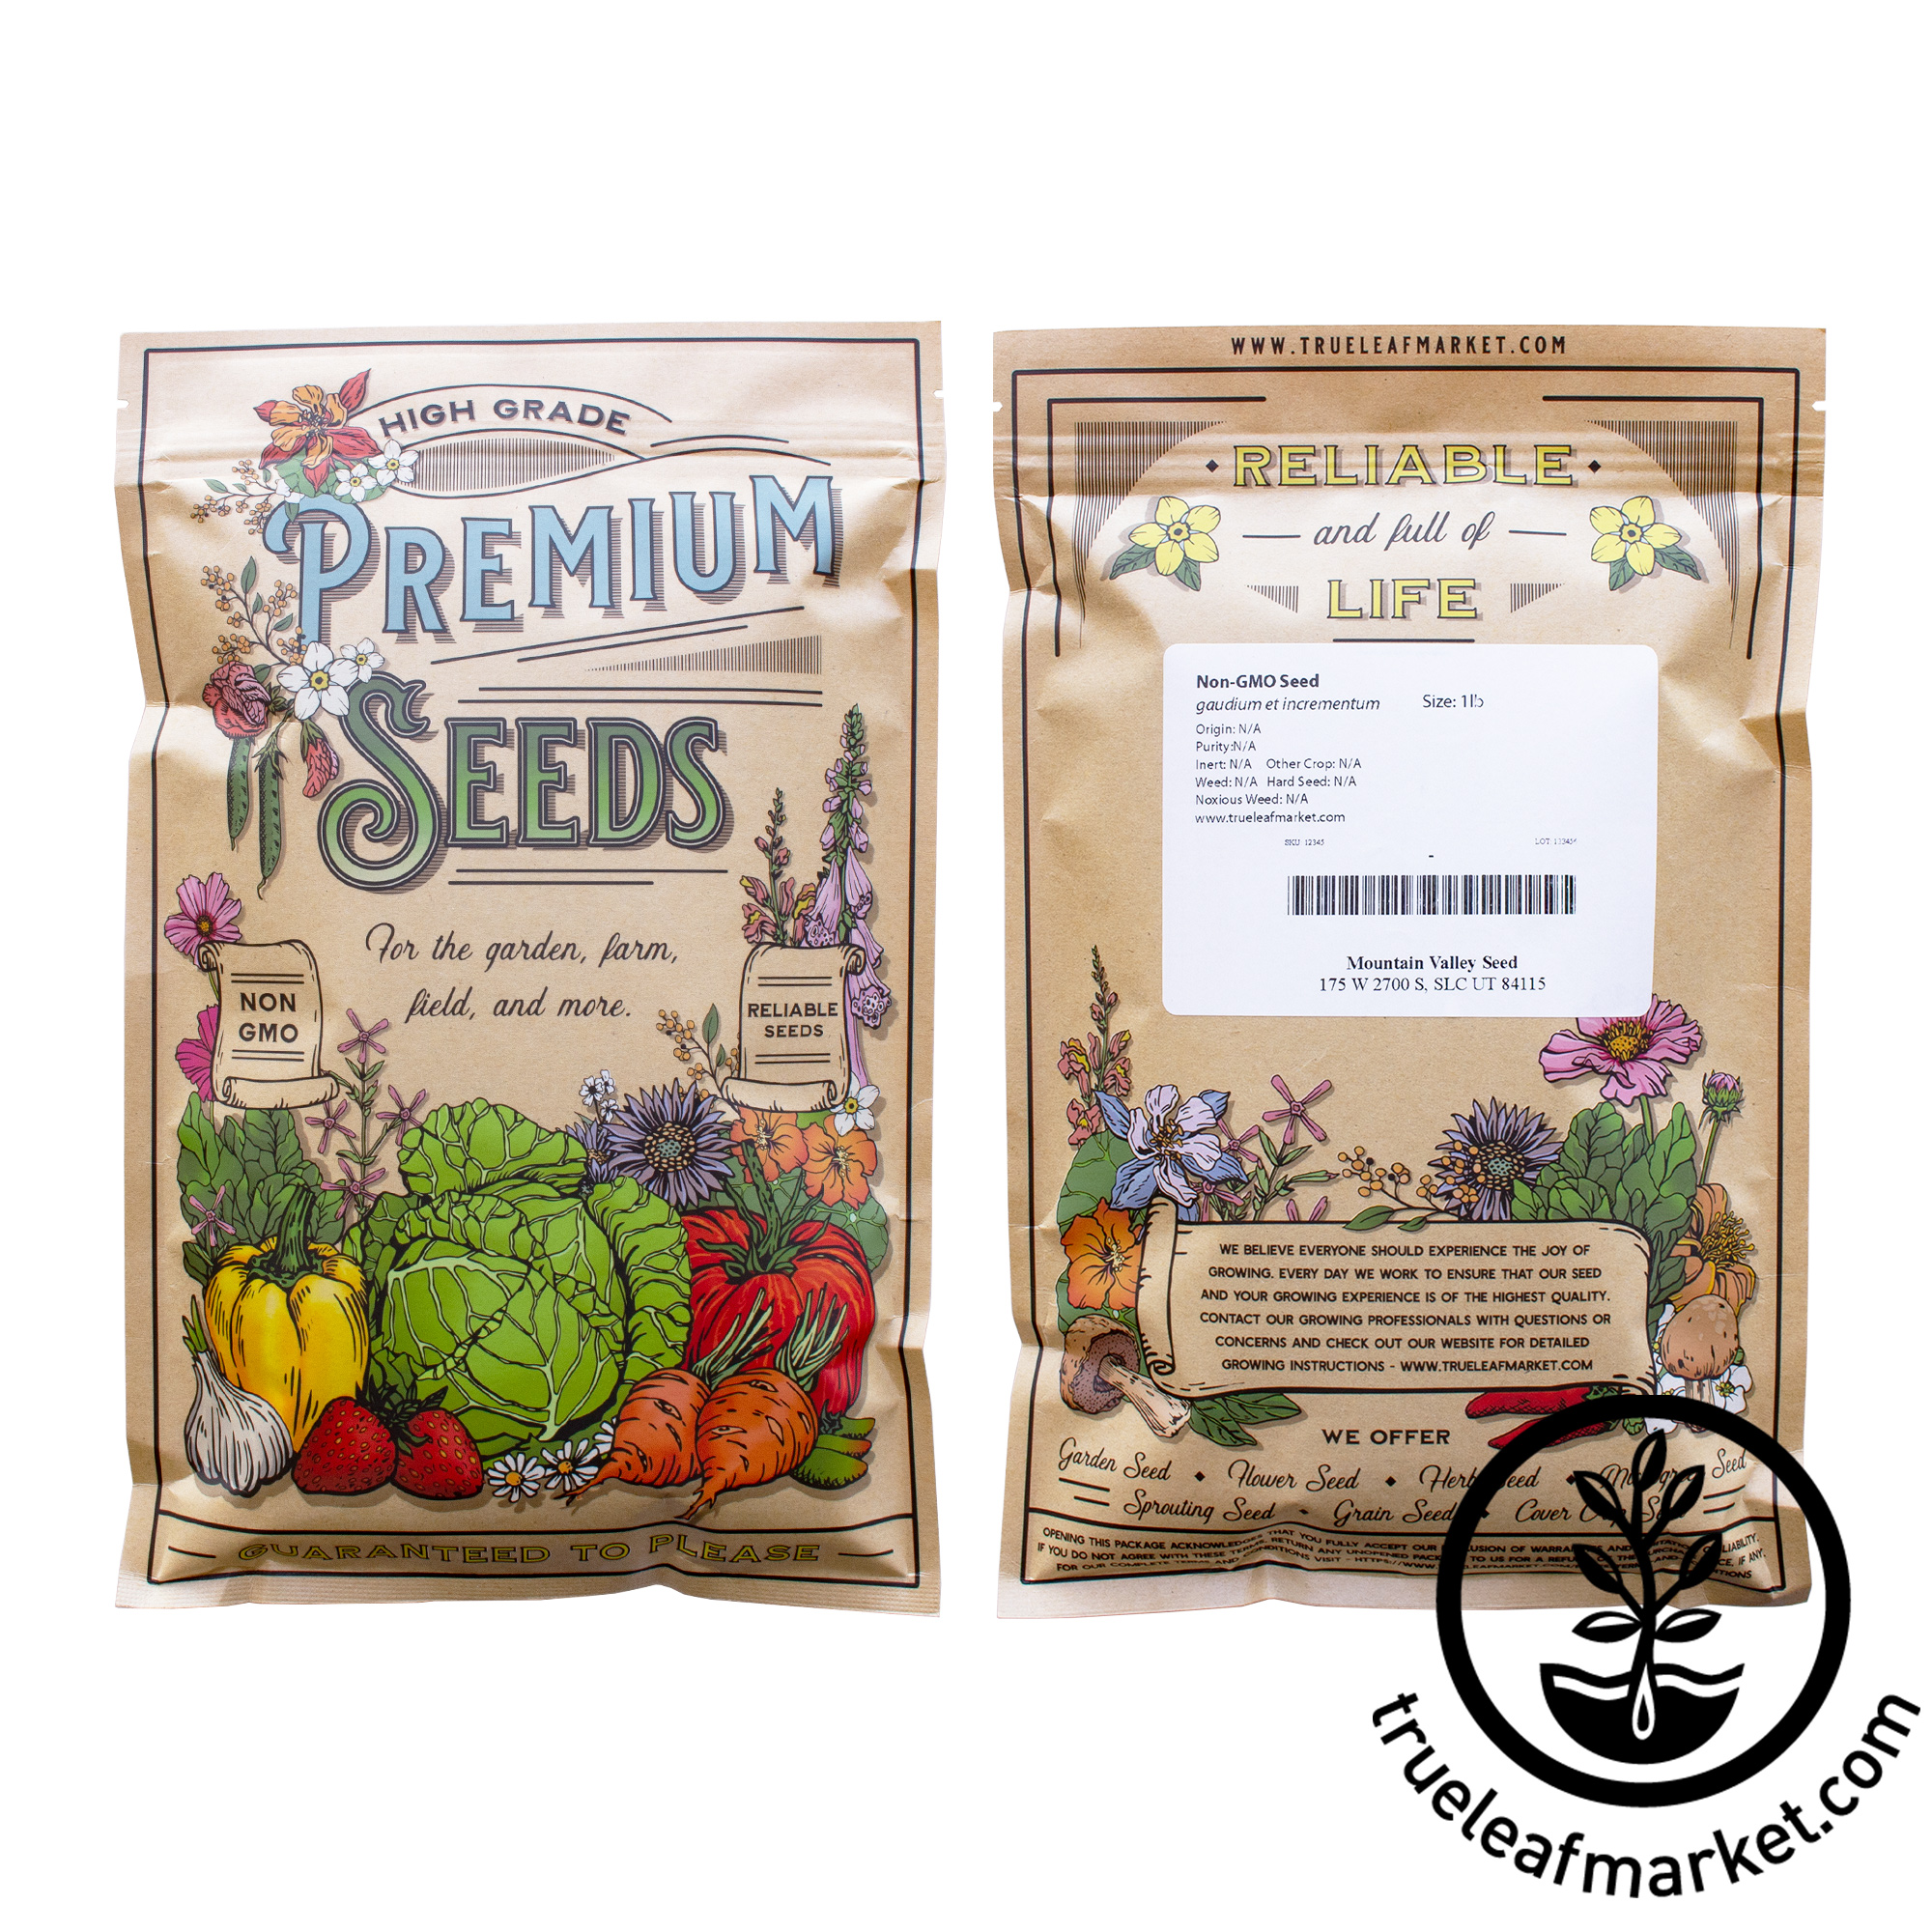 Non GMO Golden Detroit Beet Seeds